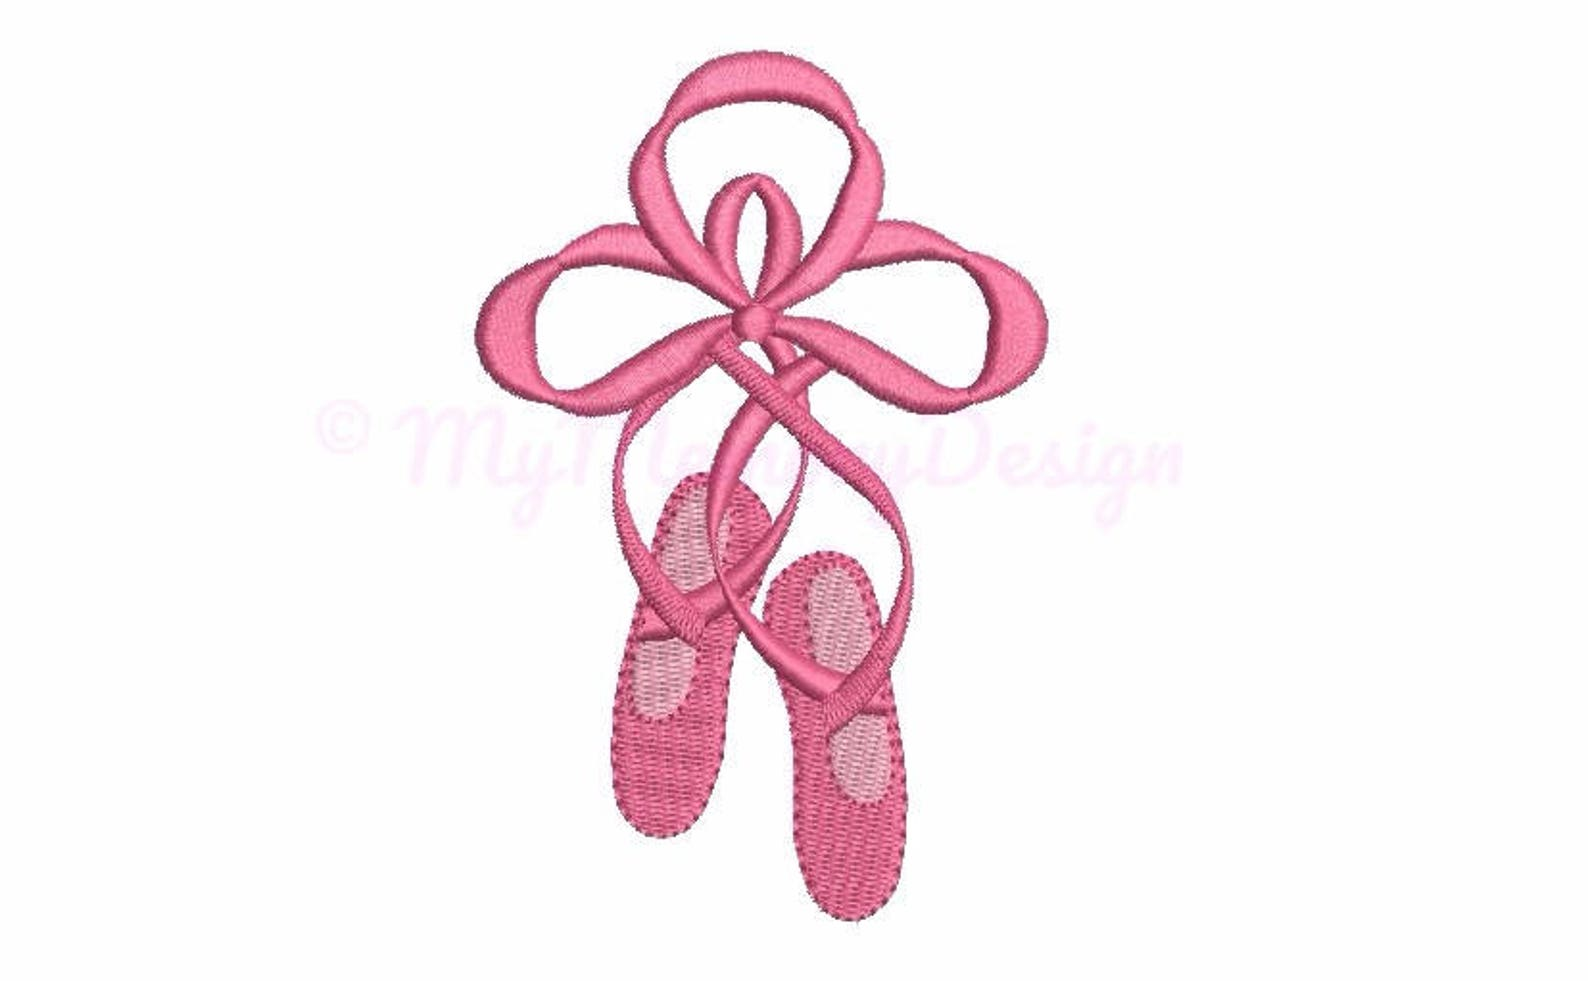 ballet embroidery design - mini embroidery set - machine embroidery - digital file - instant download - pes hus jef vip vp3 xxx